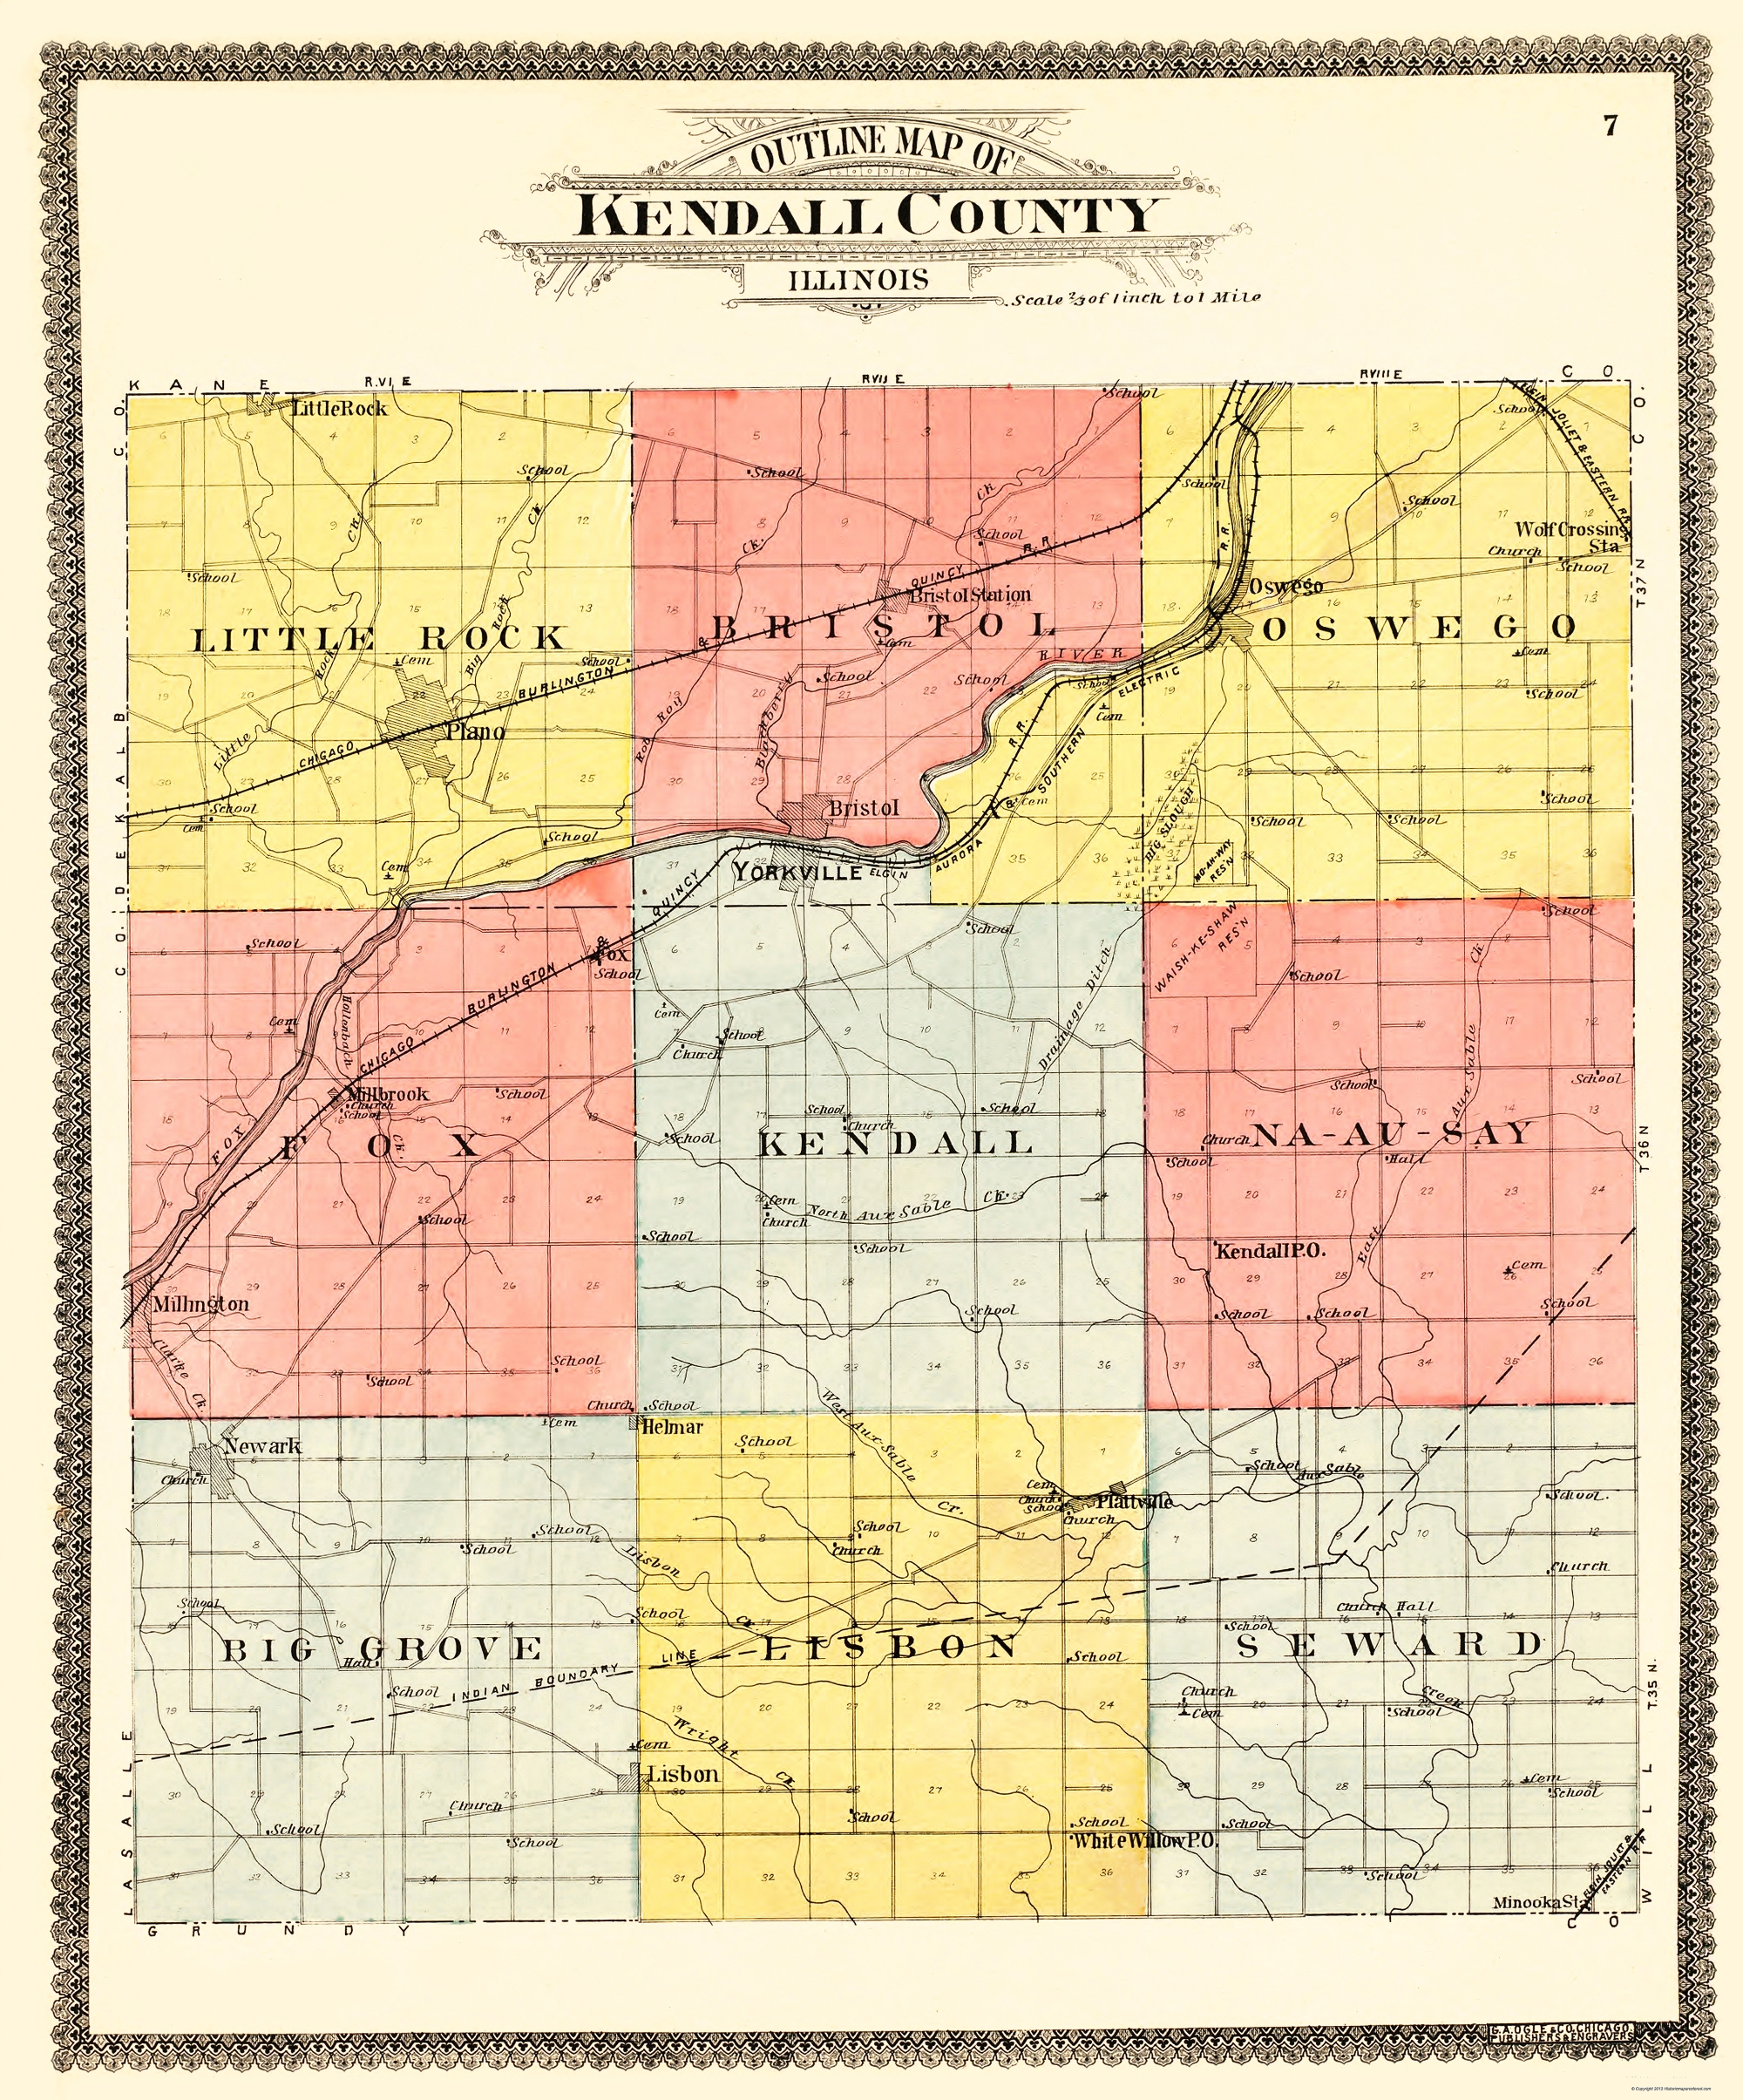 Illinois kendall county oswego - Indian Boundary Lines Are Also Shown Railways Include The Chicago Burlington Quincy Rr And The Elgin Aurora Lisbon Illinois United States